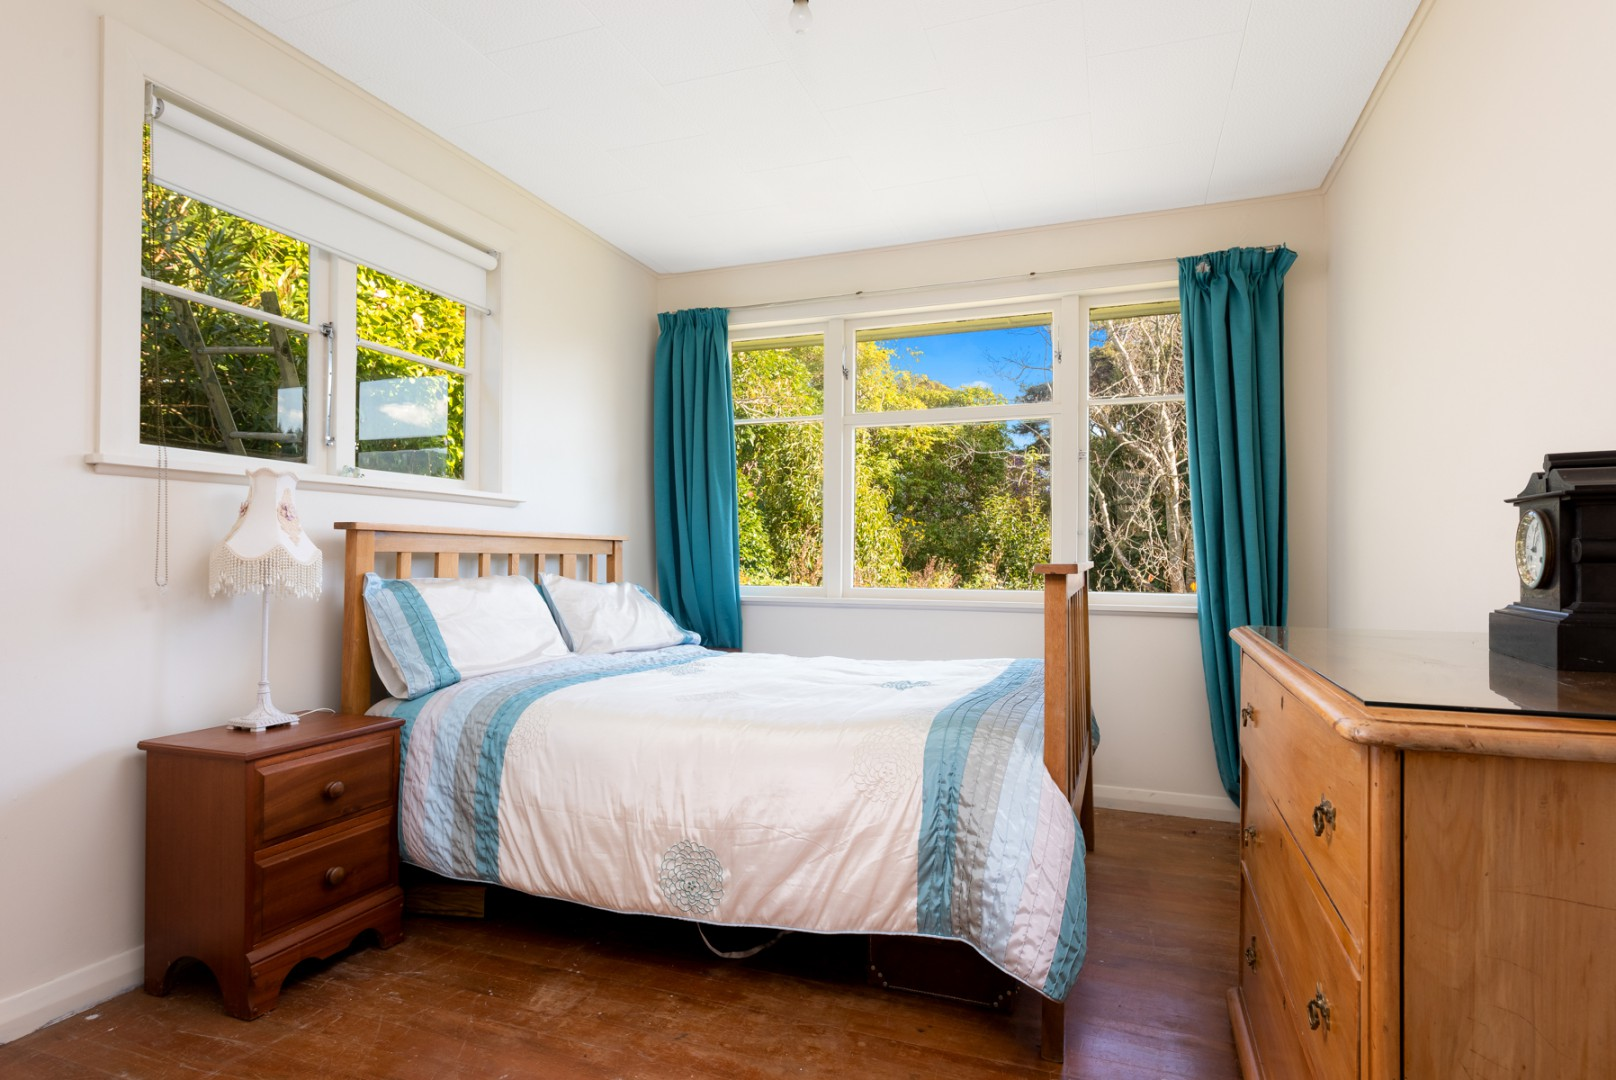 1100 Elie Bay Road - Crail Bay, Marlborough Sounds #19 -- listing/11168/s-v2.jpeg